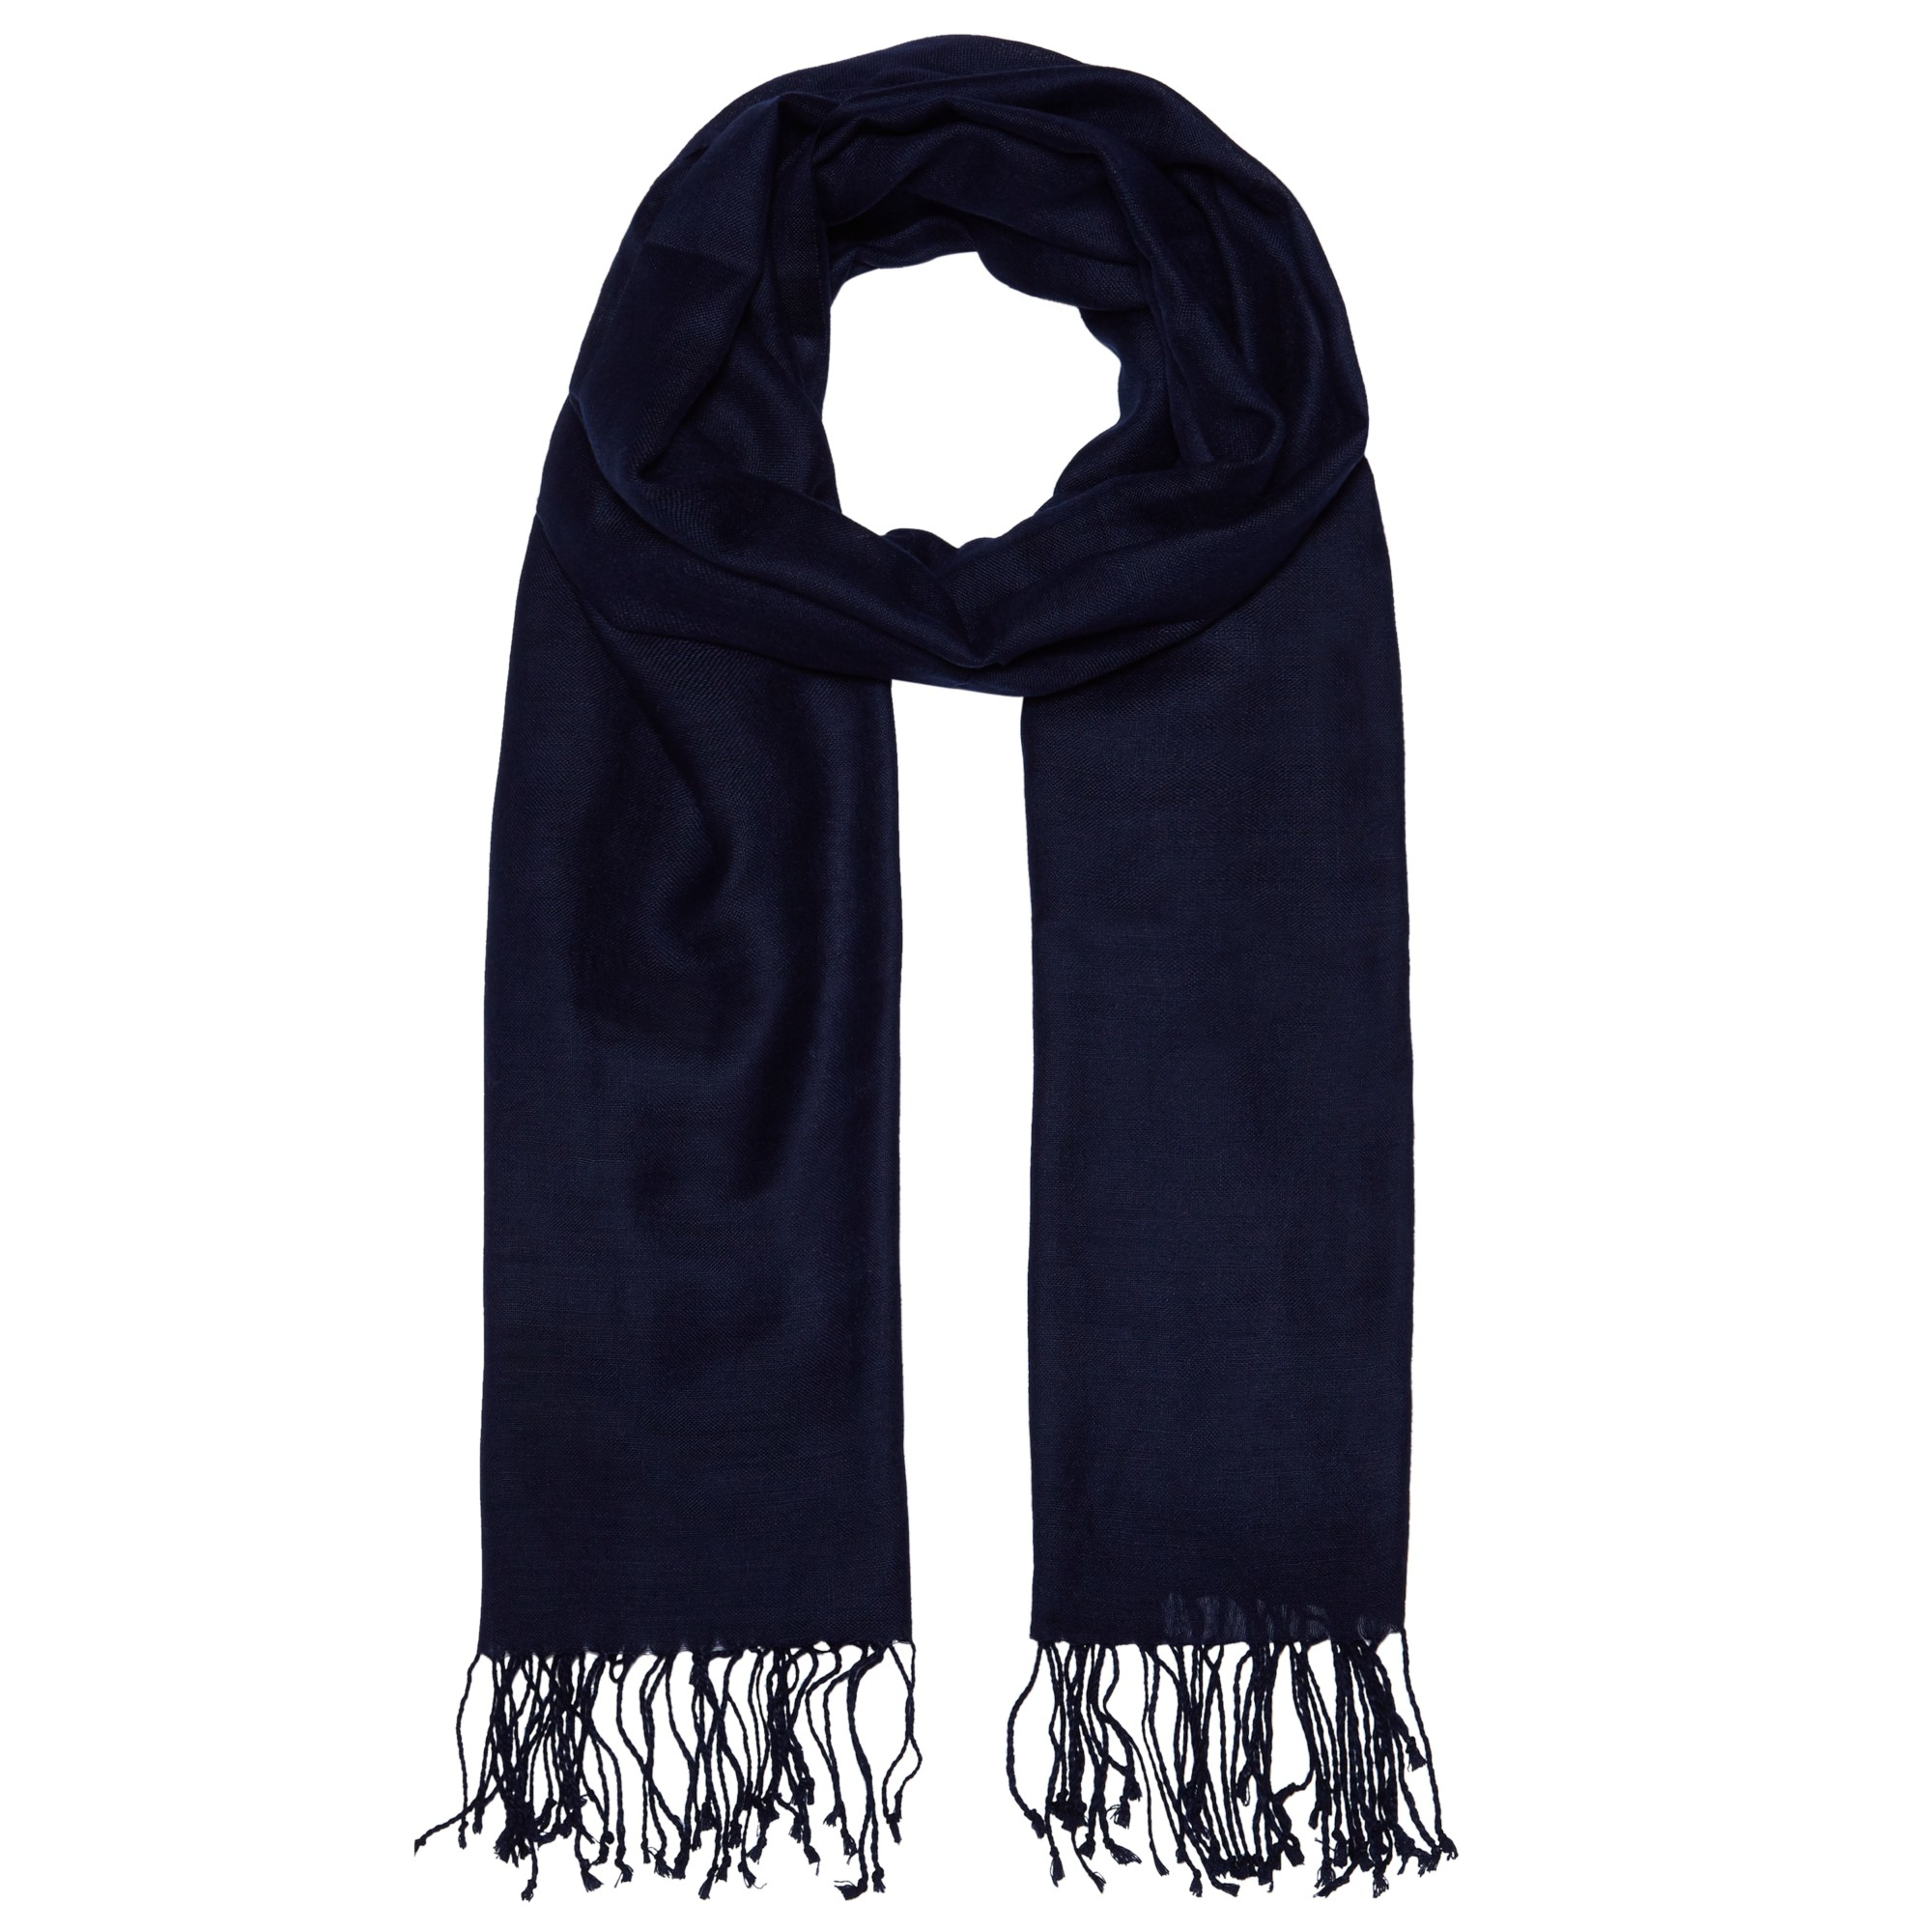 John lewis Wool Mix Occasion Scarf in Blue